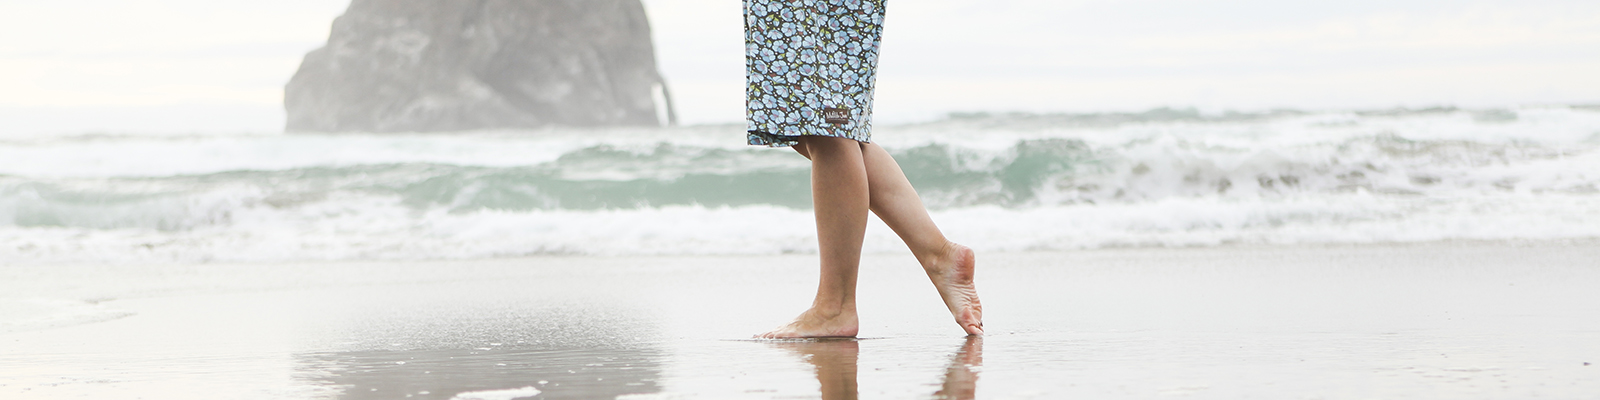 Foot and ankle treatments, surgical/nonsurgical solutions, physical therapy & products in Salem and Dallas, OR. Call 503.370.8784 for an appointment today.